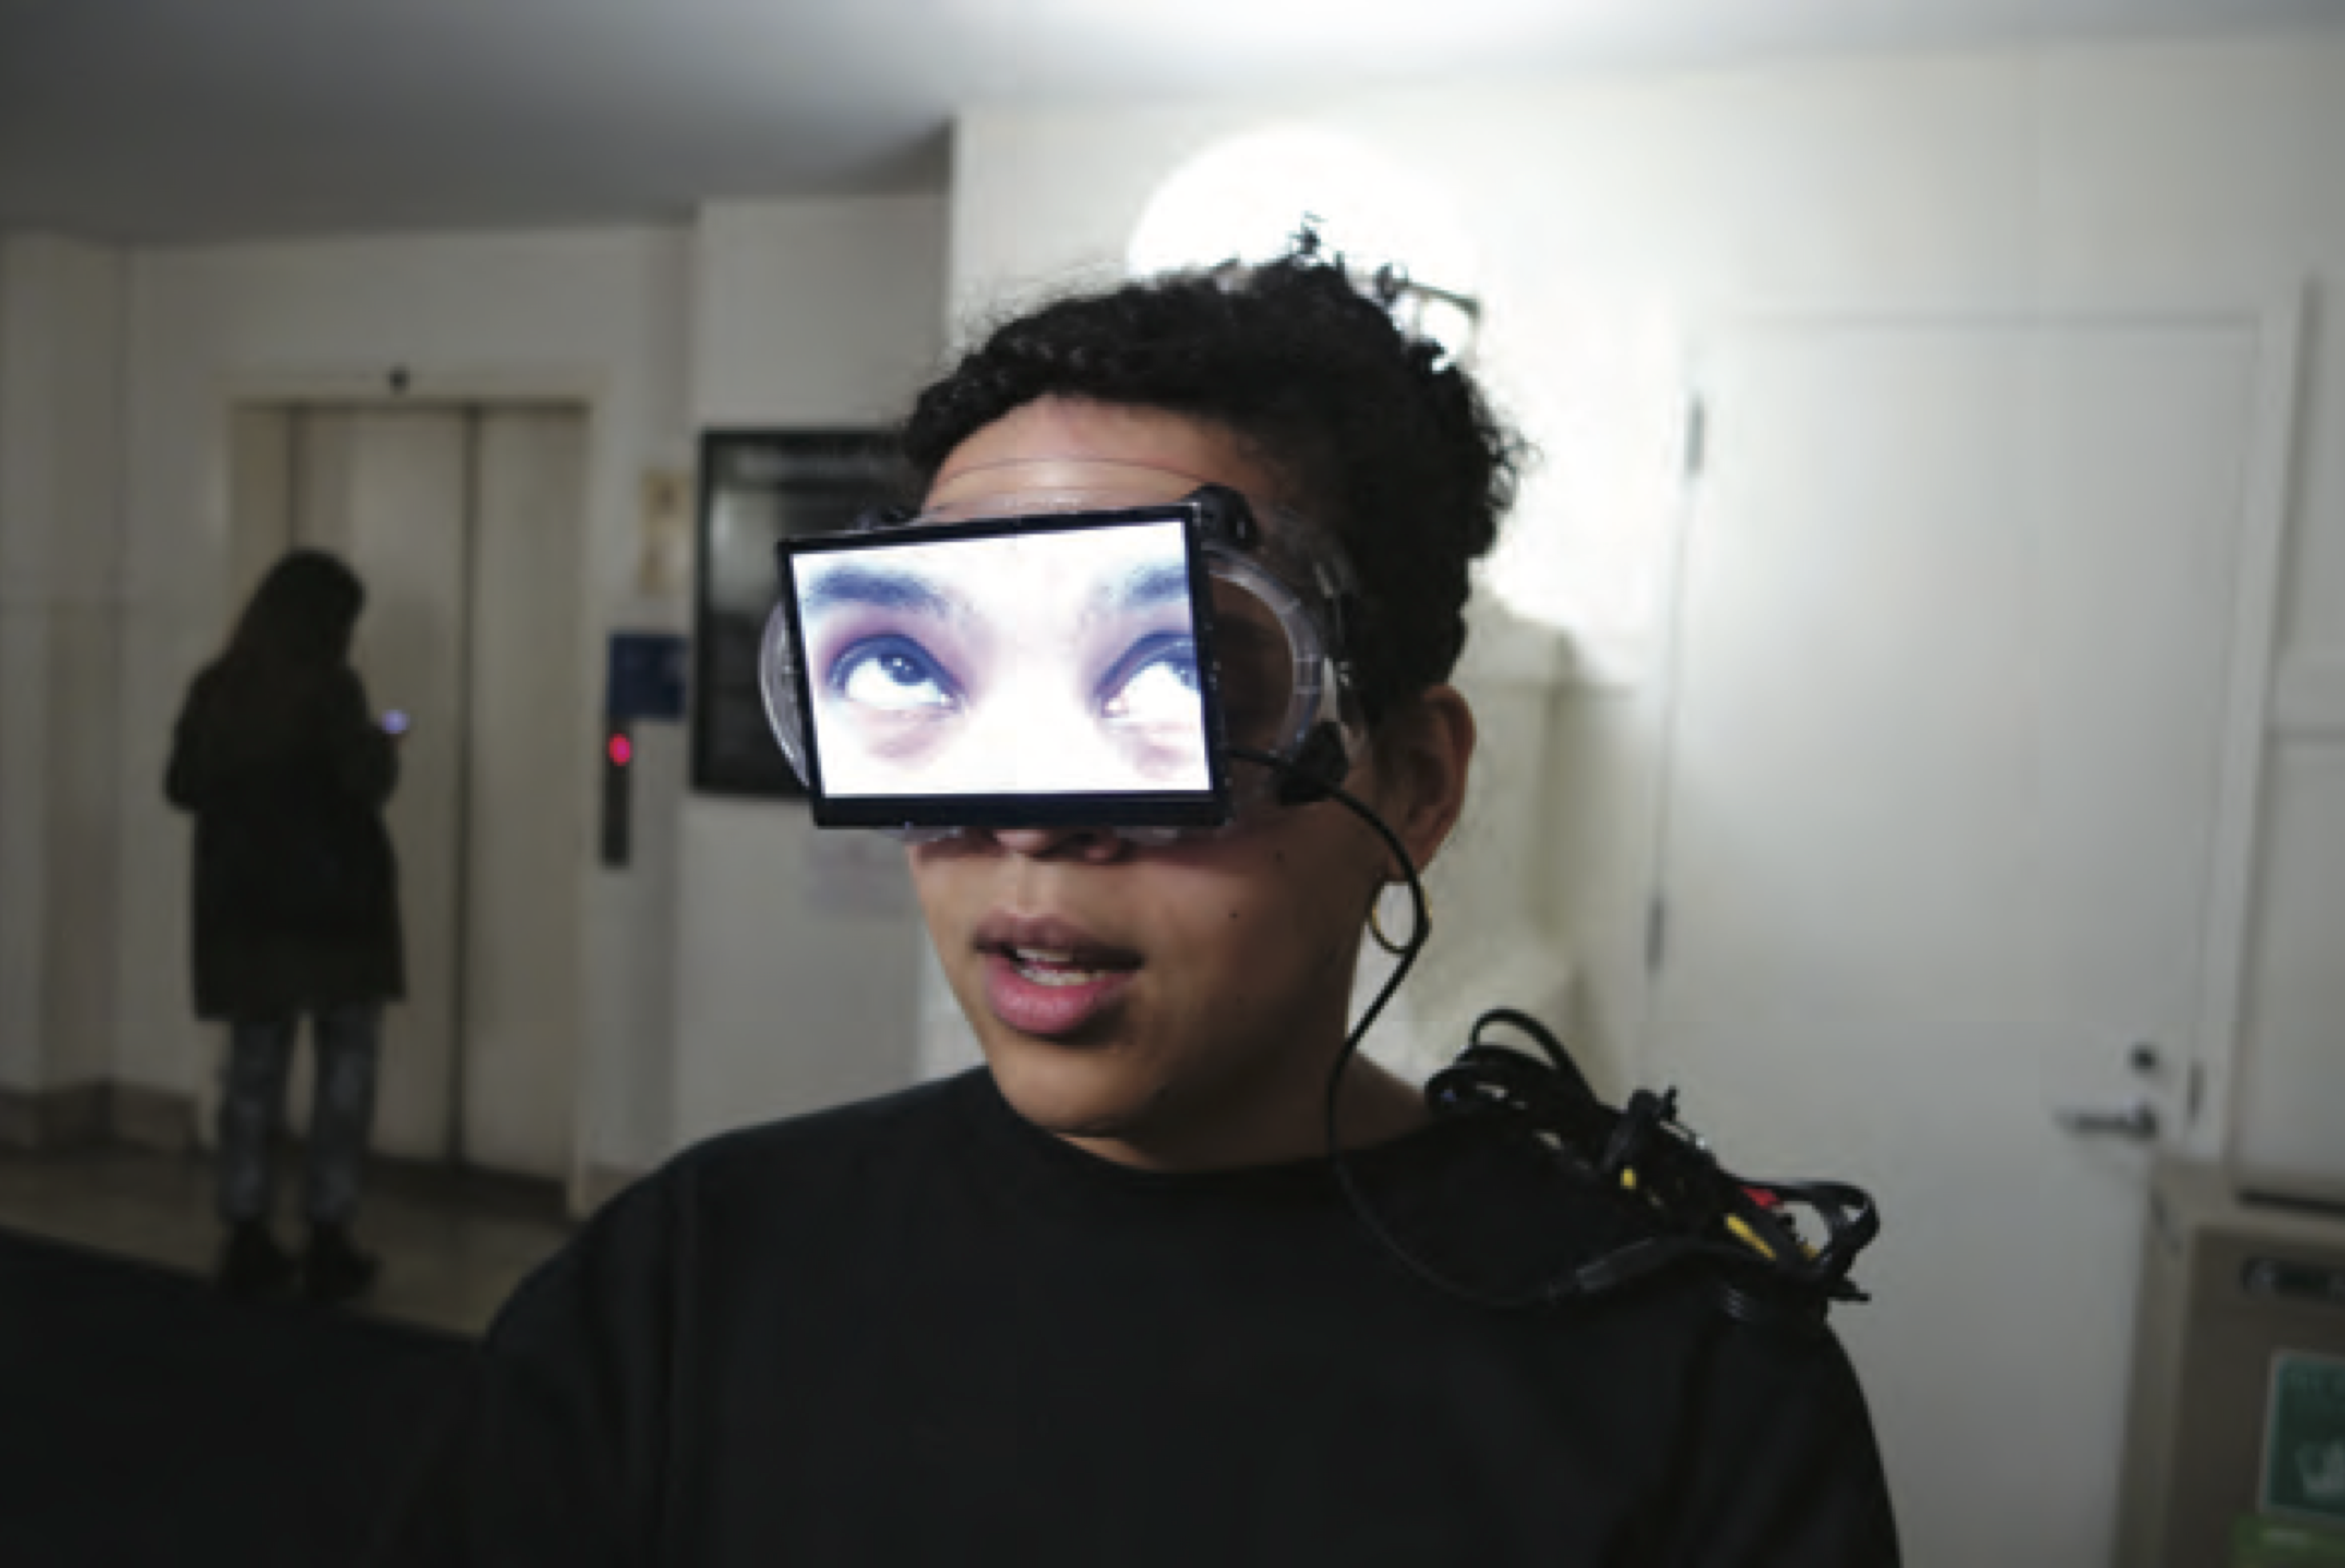 Interdisciplinary artist Sondra Perry combines video, computer-based media, and performance in Young Women Sitting and Standing And Talking and Stuff